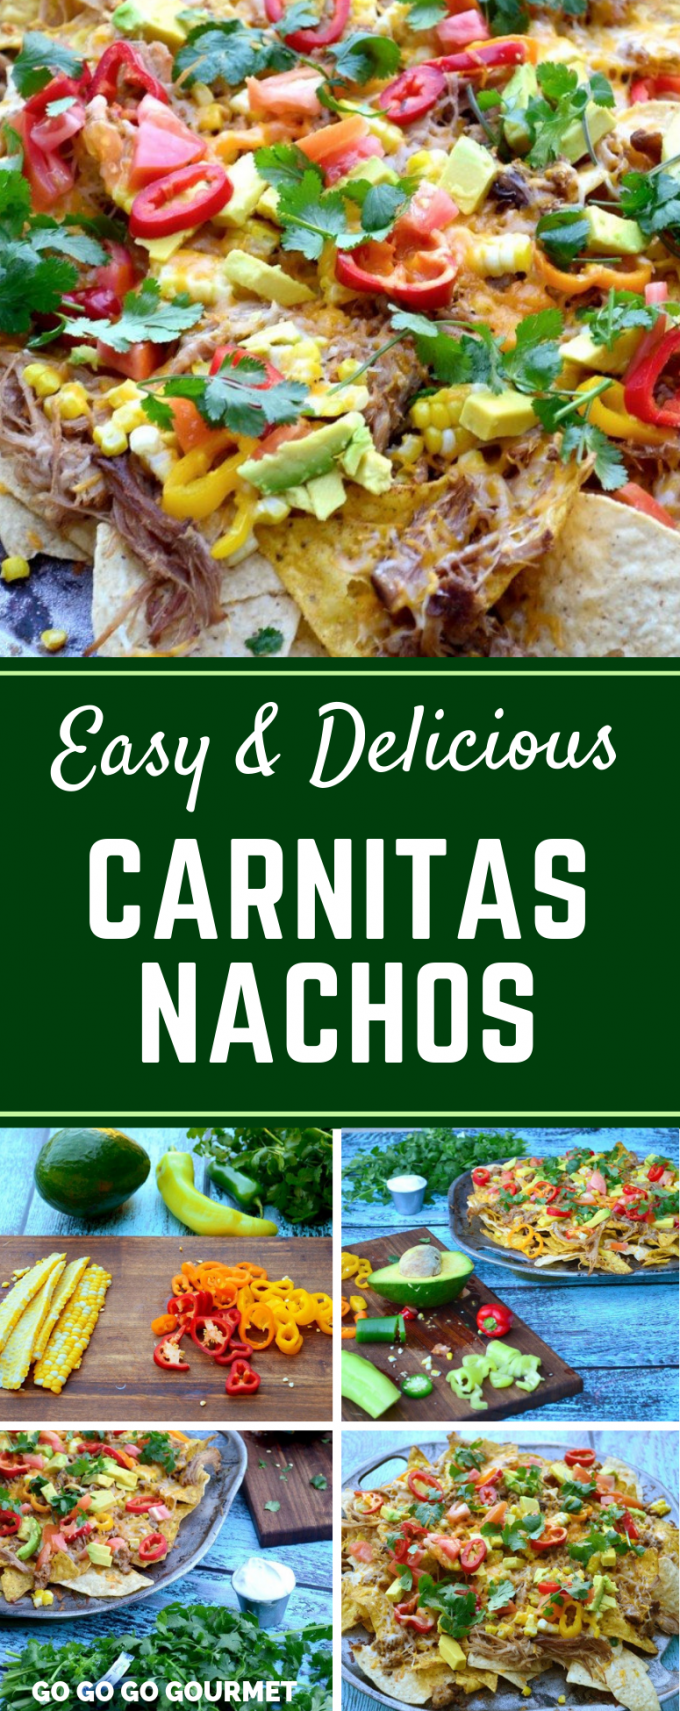 If you're looking for easy dinners, this delicious Carnitas Nachos recipe is just what you need! Topped with pork that you can make in the crock pot, this is a party food that you don't want to miss! #gogogogourmet #carnitasnachos #easynachosrecipes #mexicanfood  via @gogogogourmet